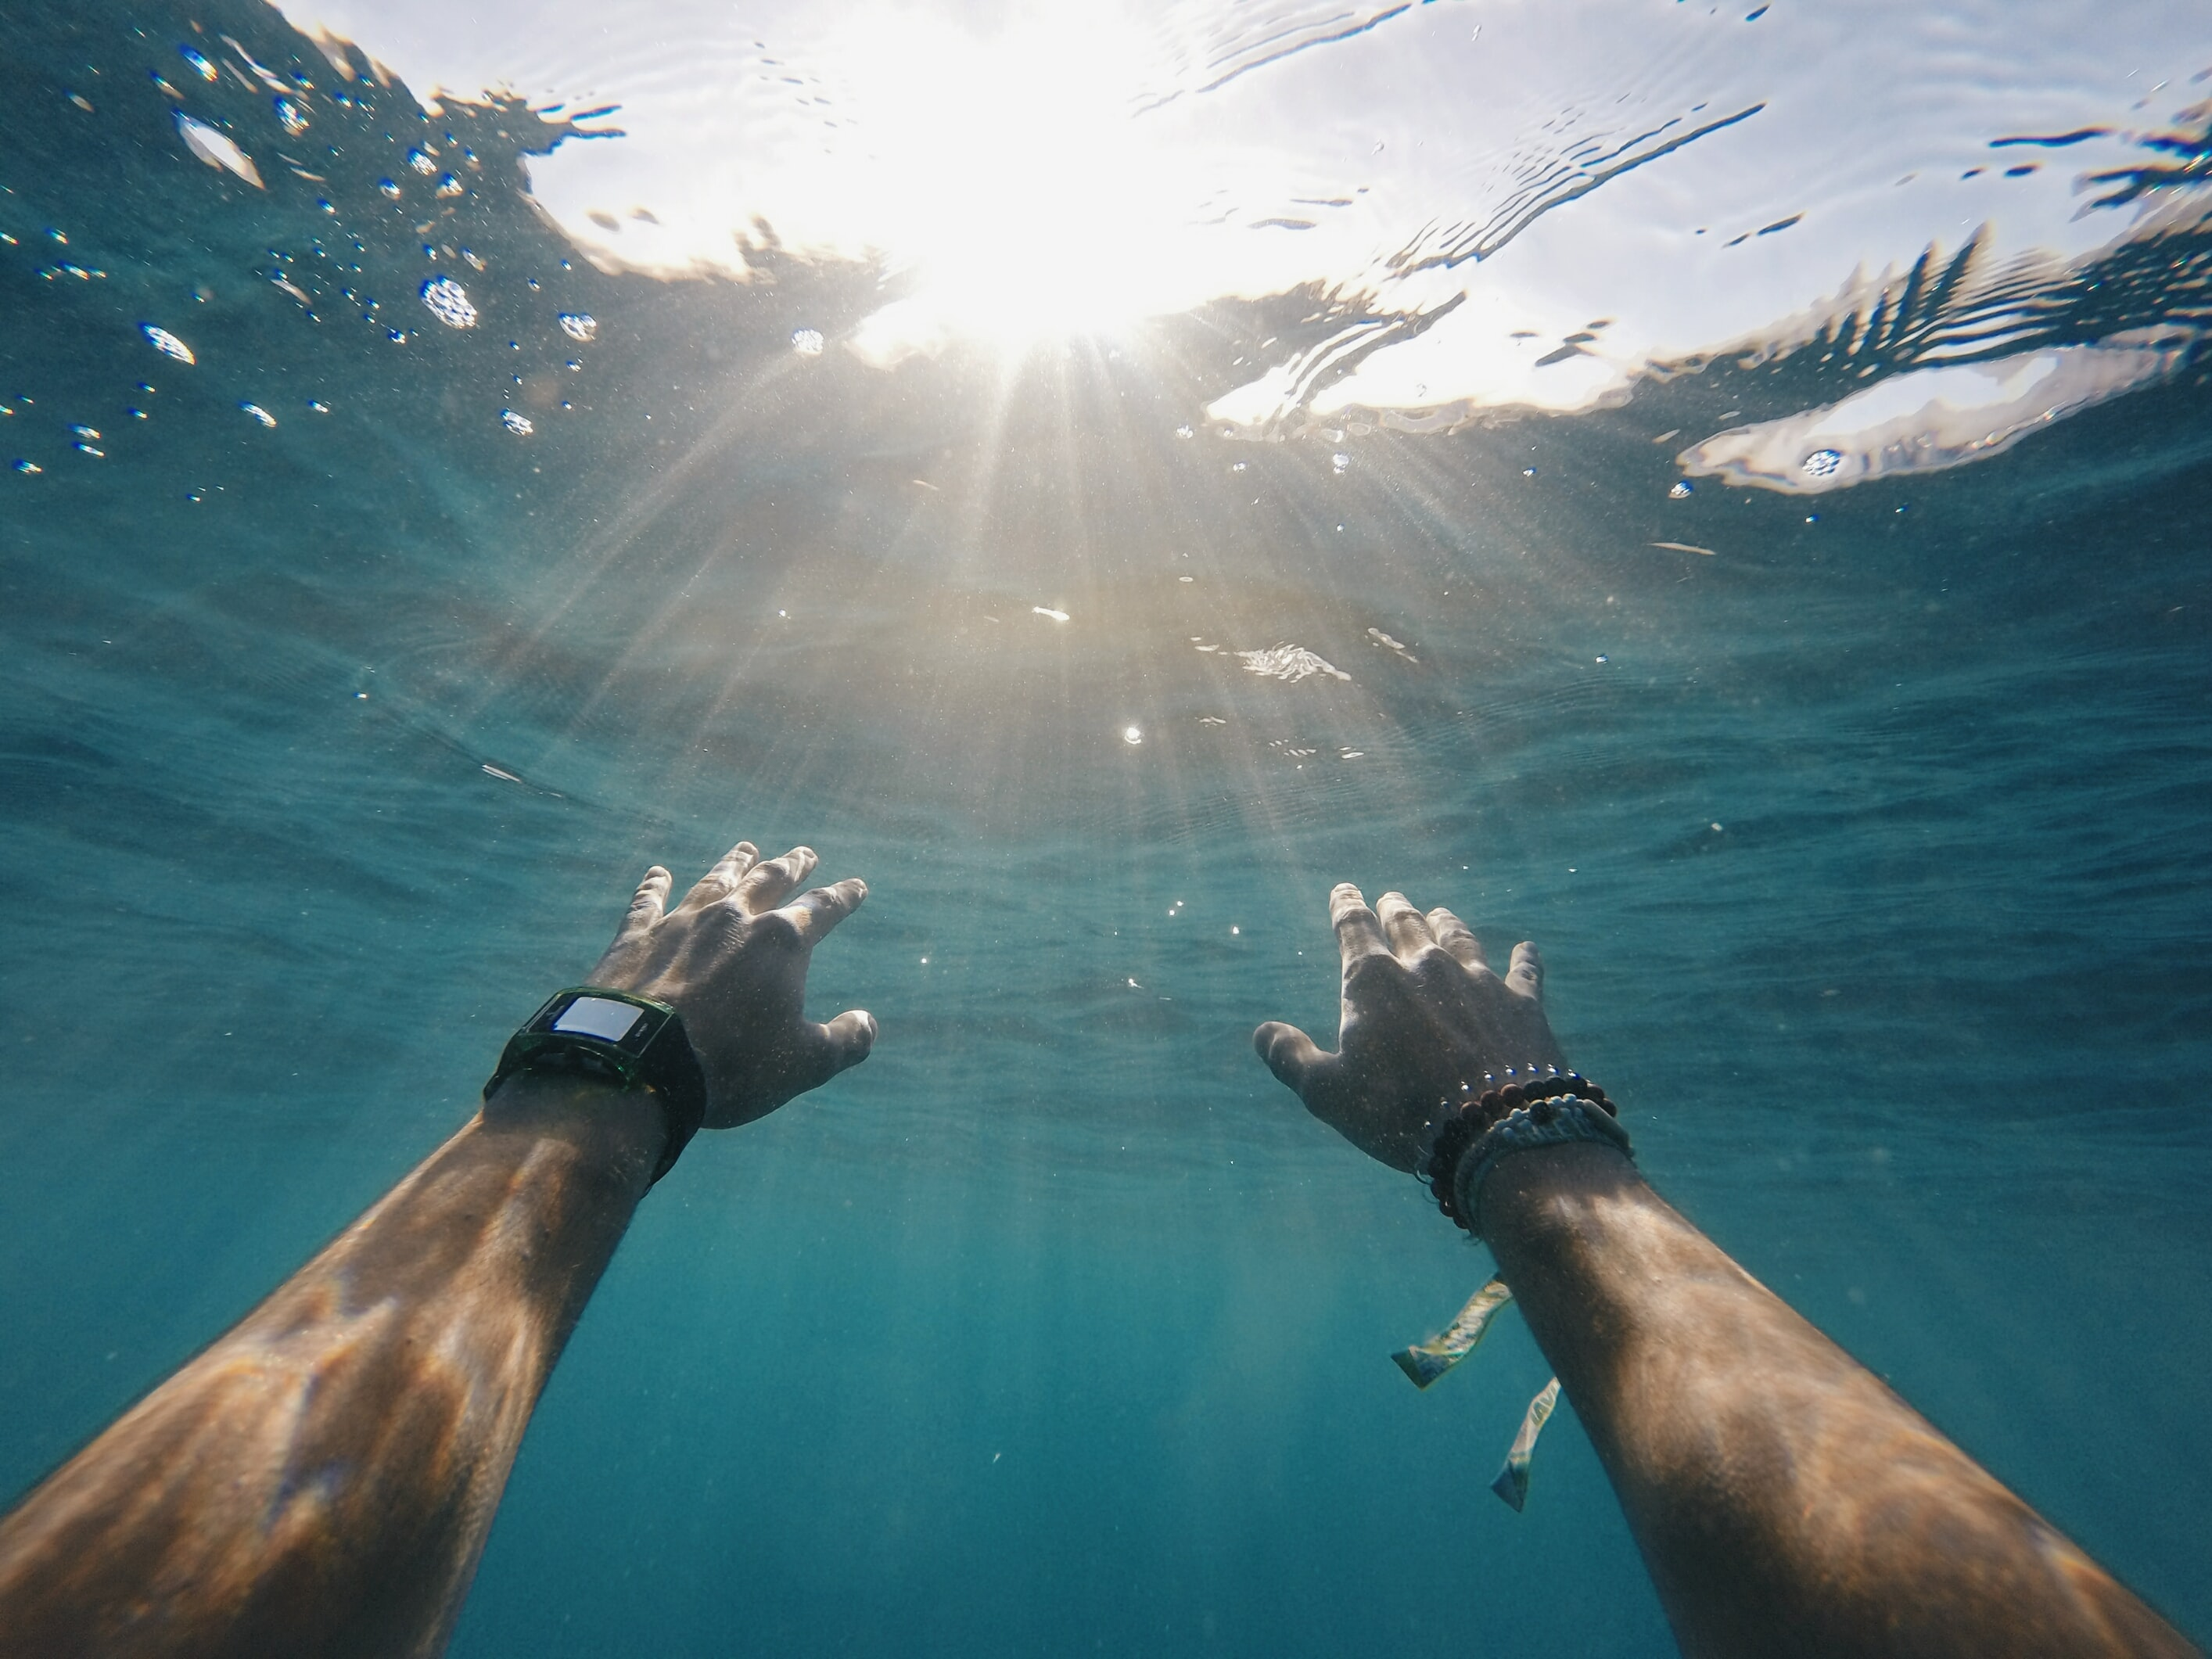 Wearing a smart watch while swimming underwater.